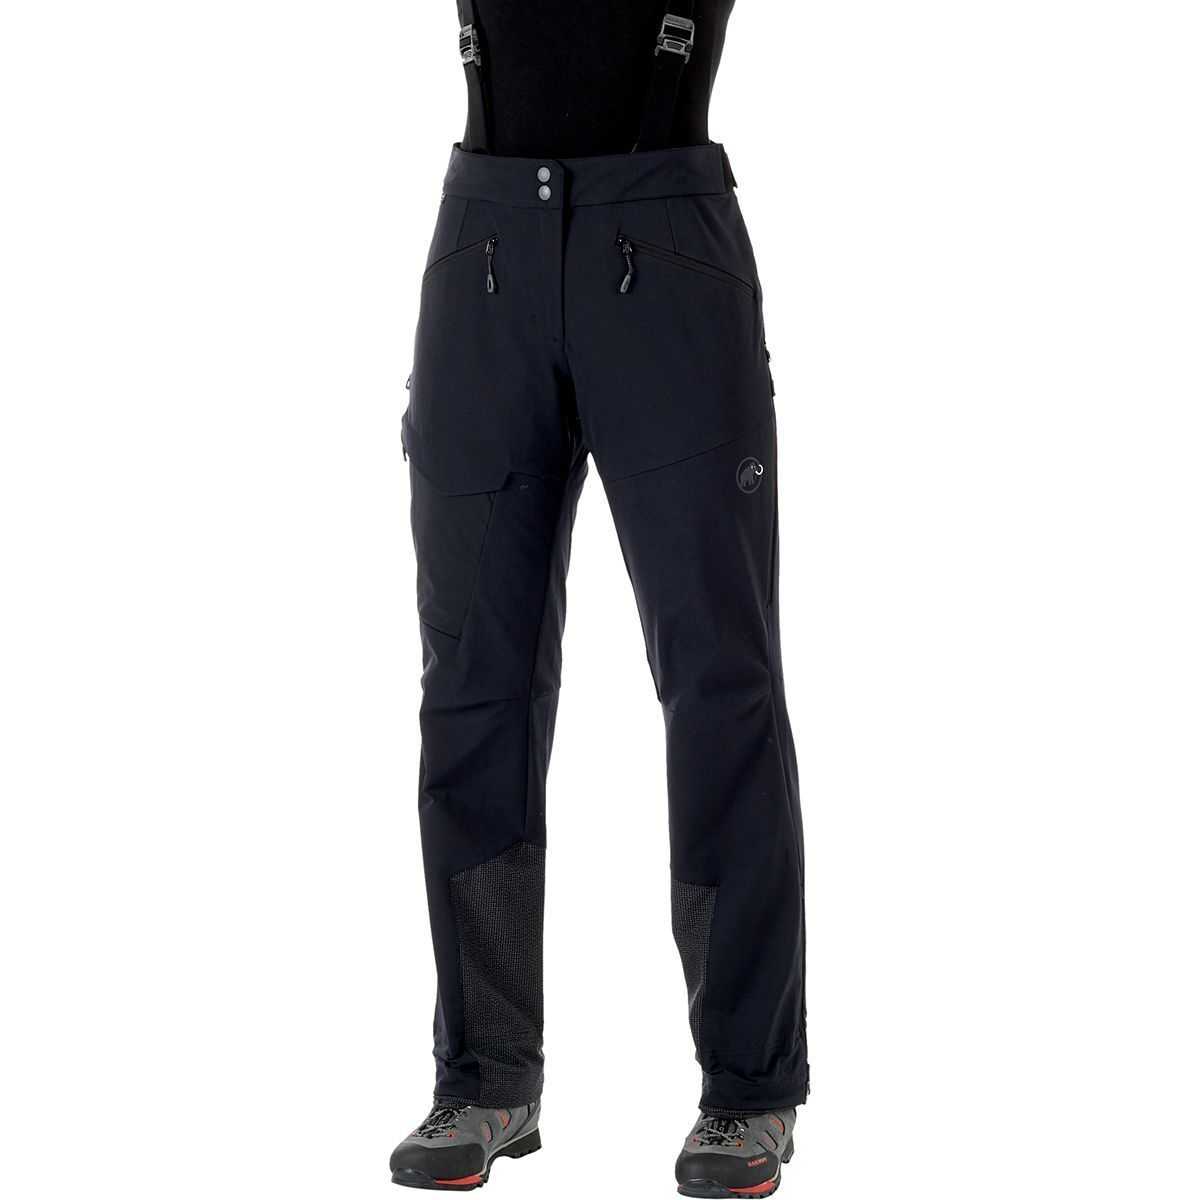 Base Jump So Touring Pant Women S Mammut Base Jump So Touring Pant Women S Base Basejumping Hang In 2020 Pants For Women Clothes For Women Outdoor Apparel